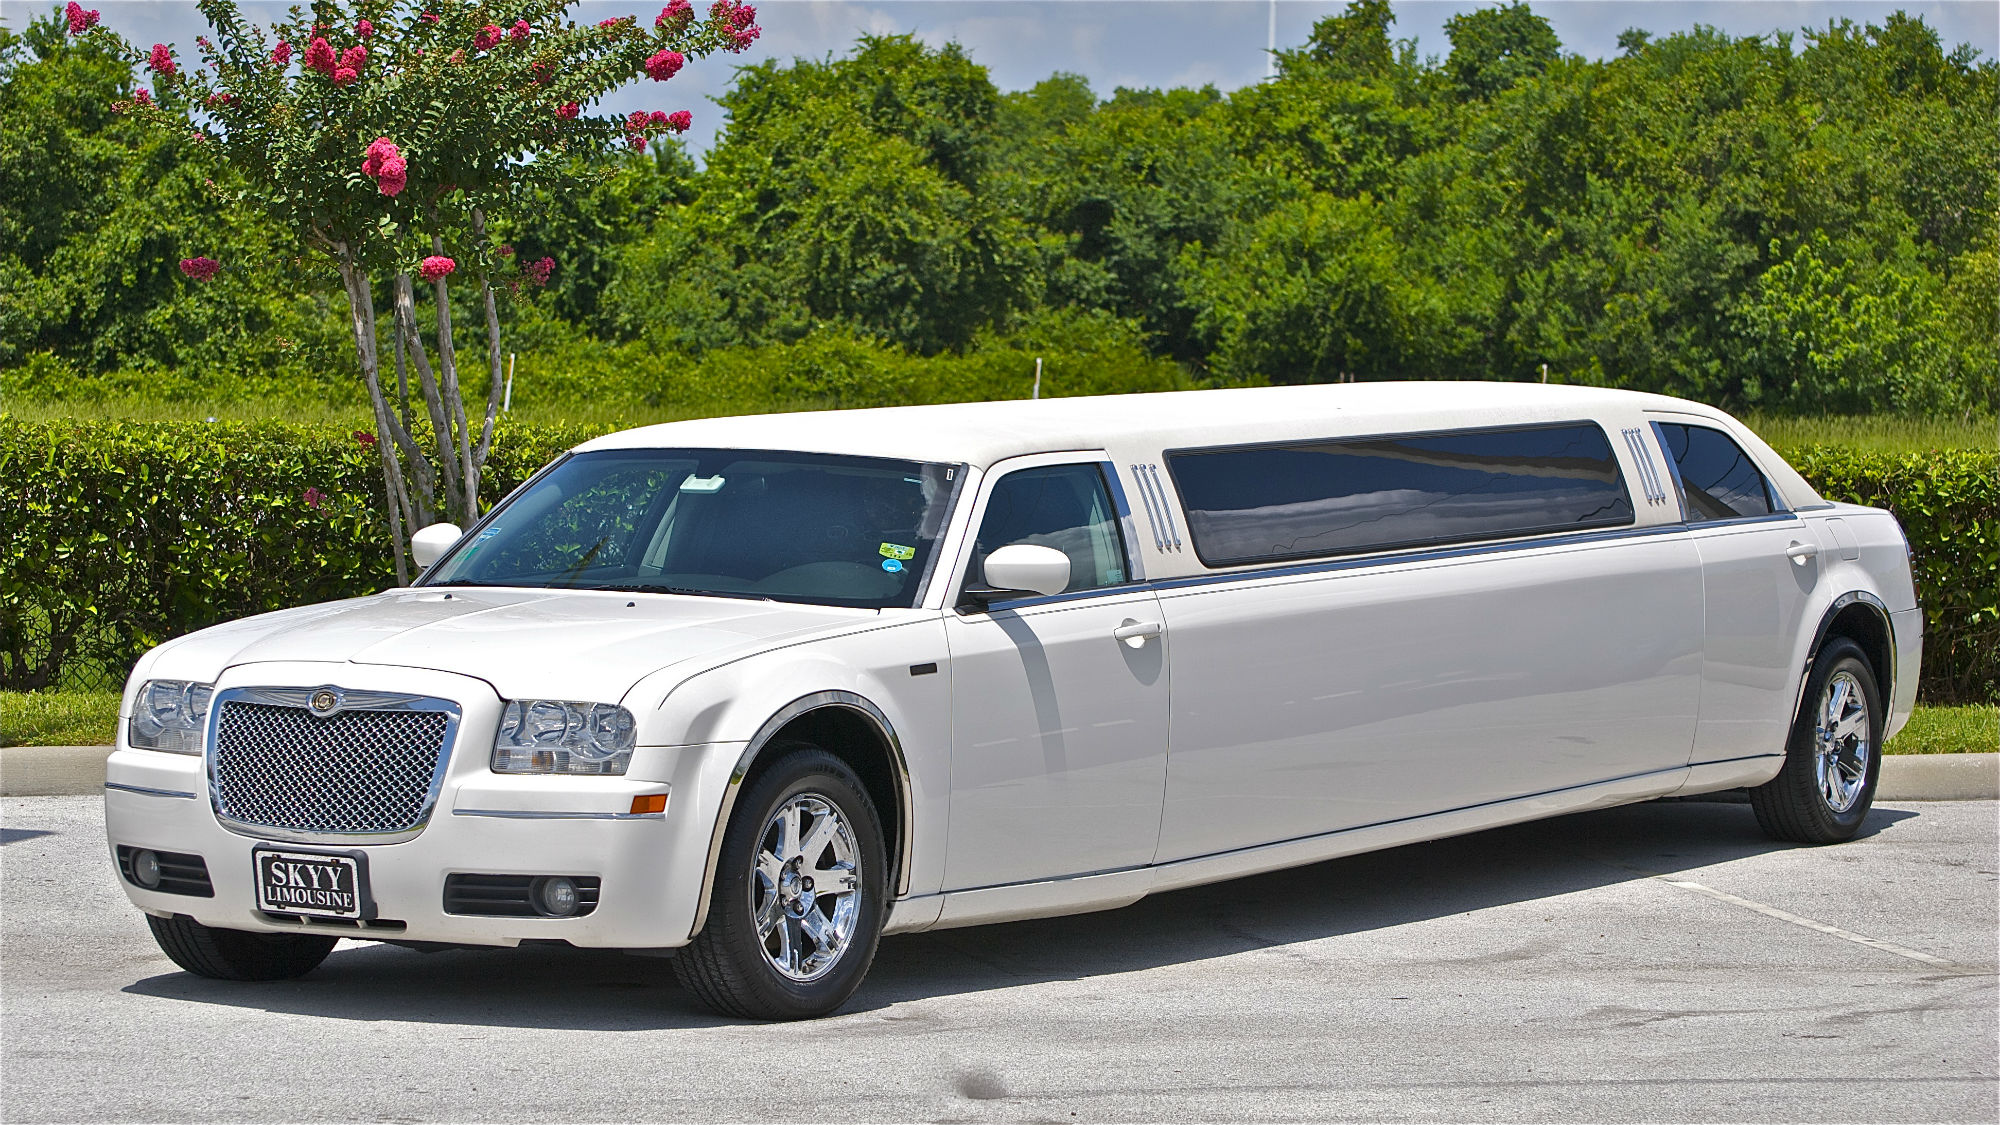 Hire Limousine Services and make Your Memories Unforgettable